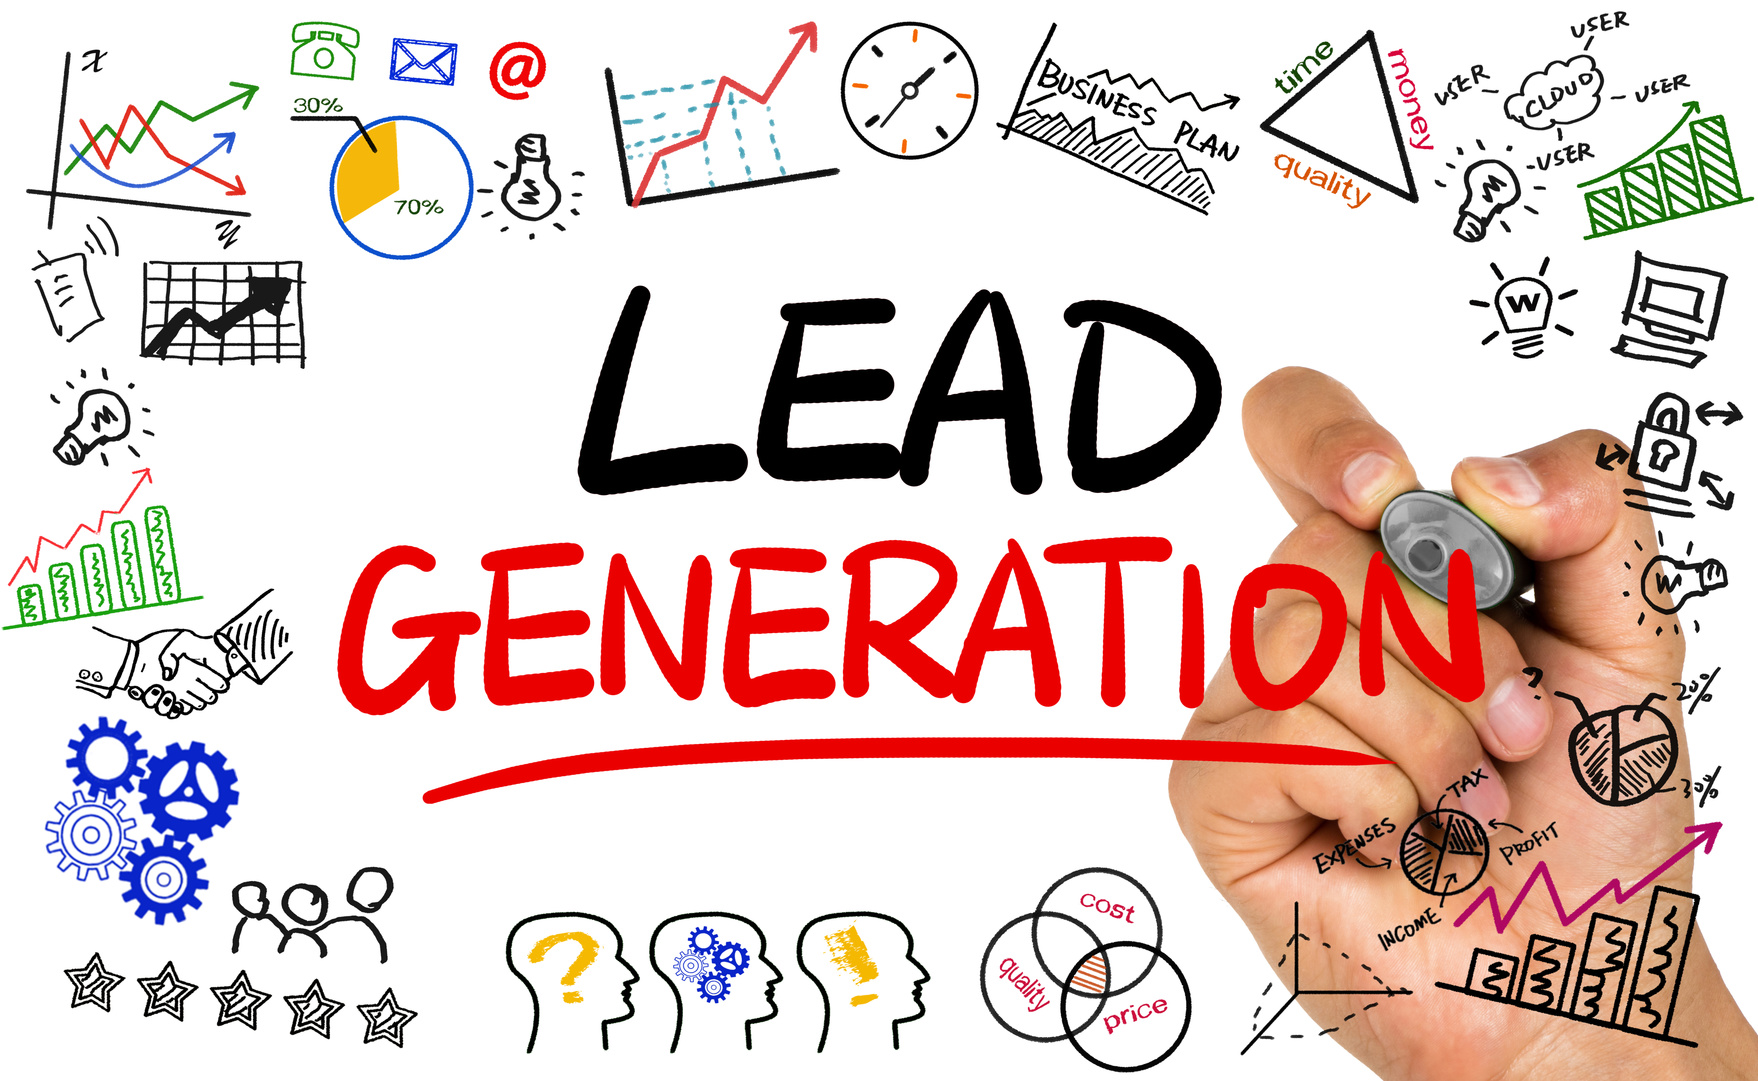 WCI online marketing and lead generation services